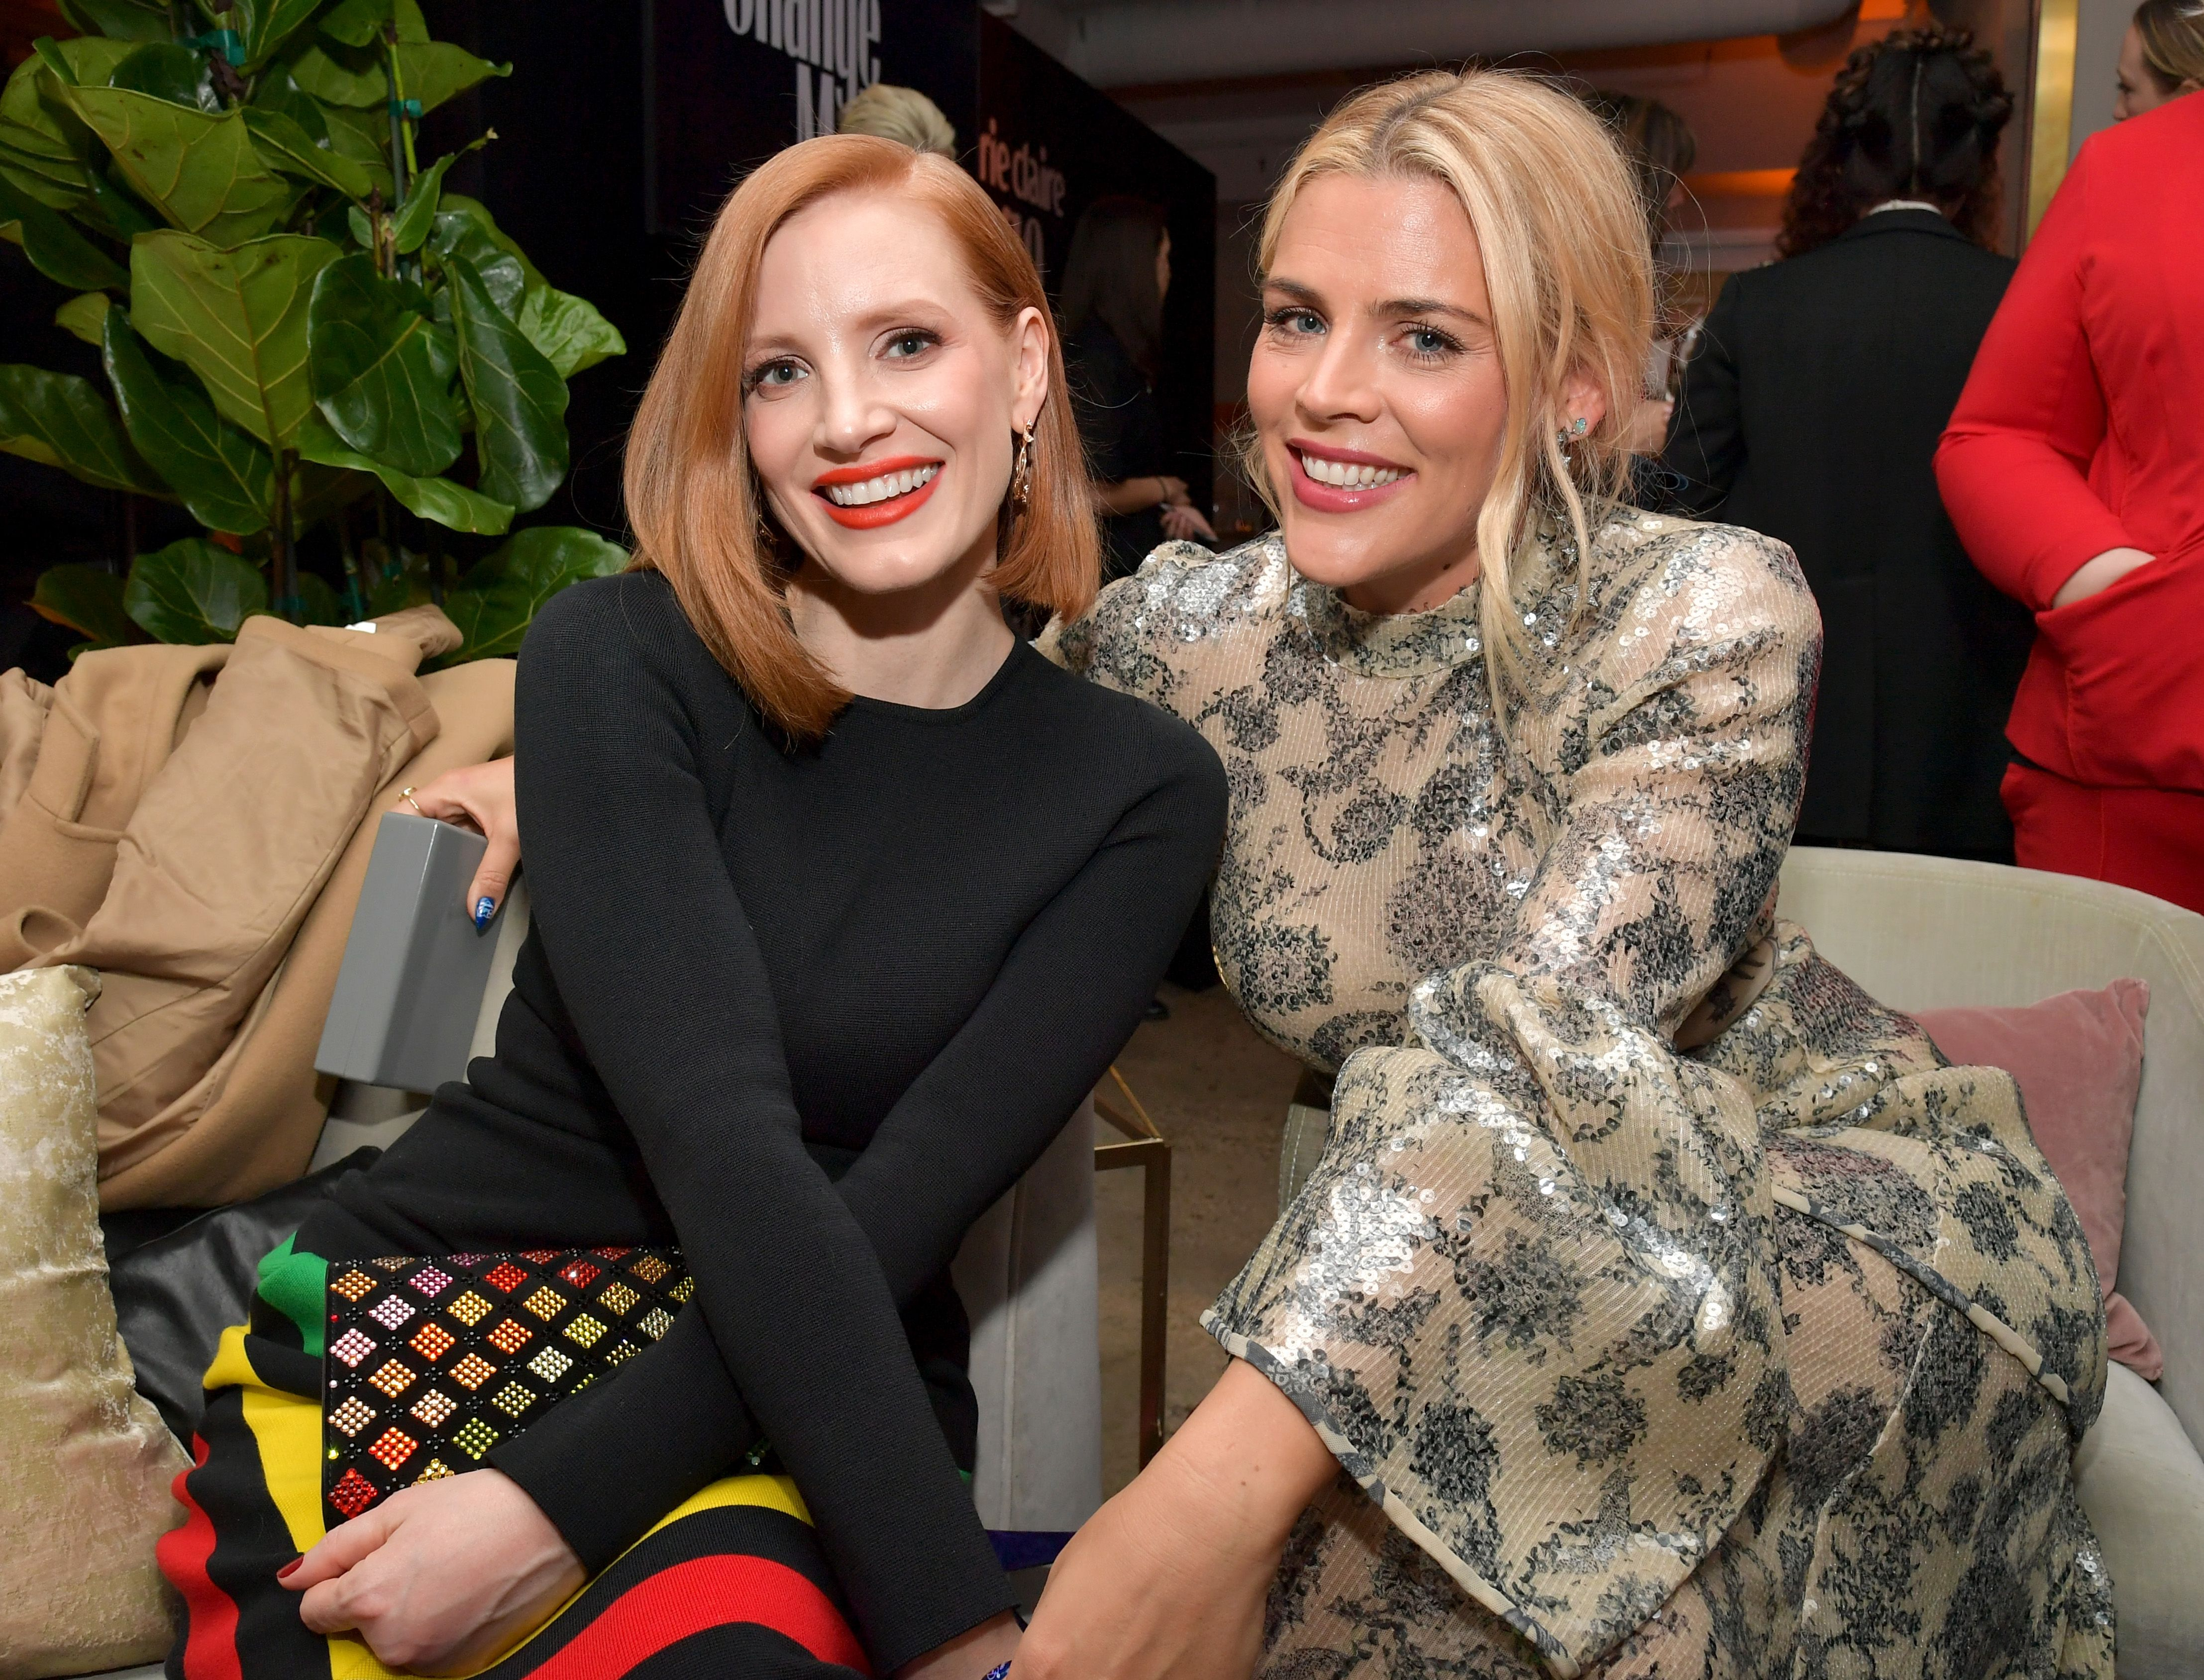 """What I would love to see change in 2019 is for women to continue to talk to each other and maybe discuss issues that in the past have felt taboo,"" Chastain, seen here with Busy Philipps, told us at the Change Makers event in Los Angeles. ""Discuss their salaries. Discuss their coworkers. Maybe discuss a history of abuse or unfair work conditions that they've experienced. Because the one thing that we've really discovered is that the more that we come together and share these stories, the more we can lean on each other and move forward to change the society for everyone."""